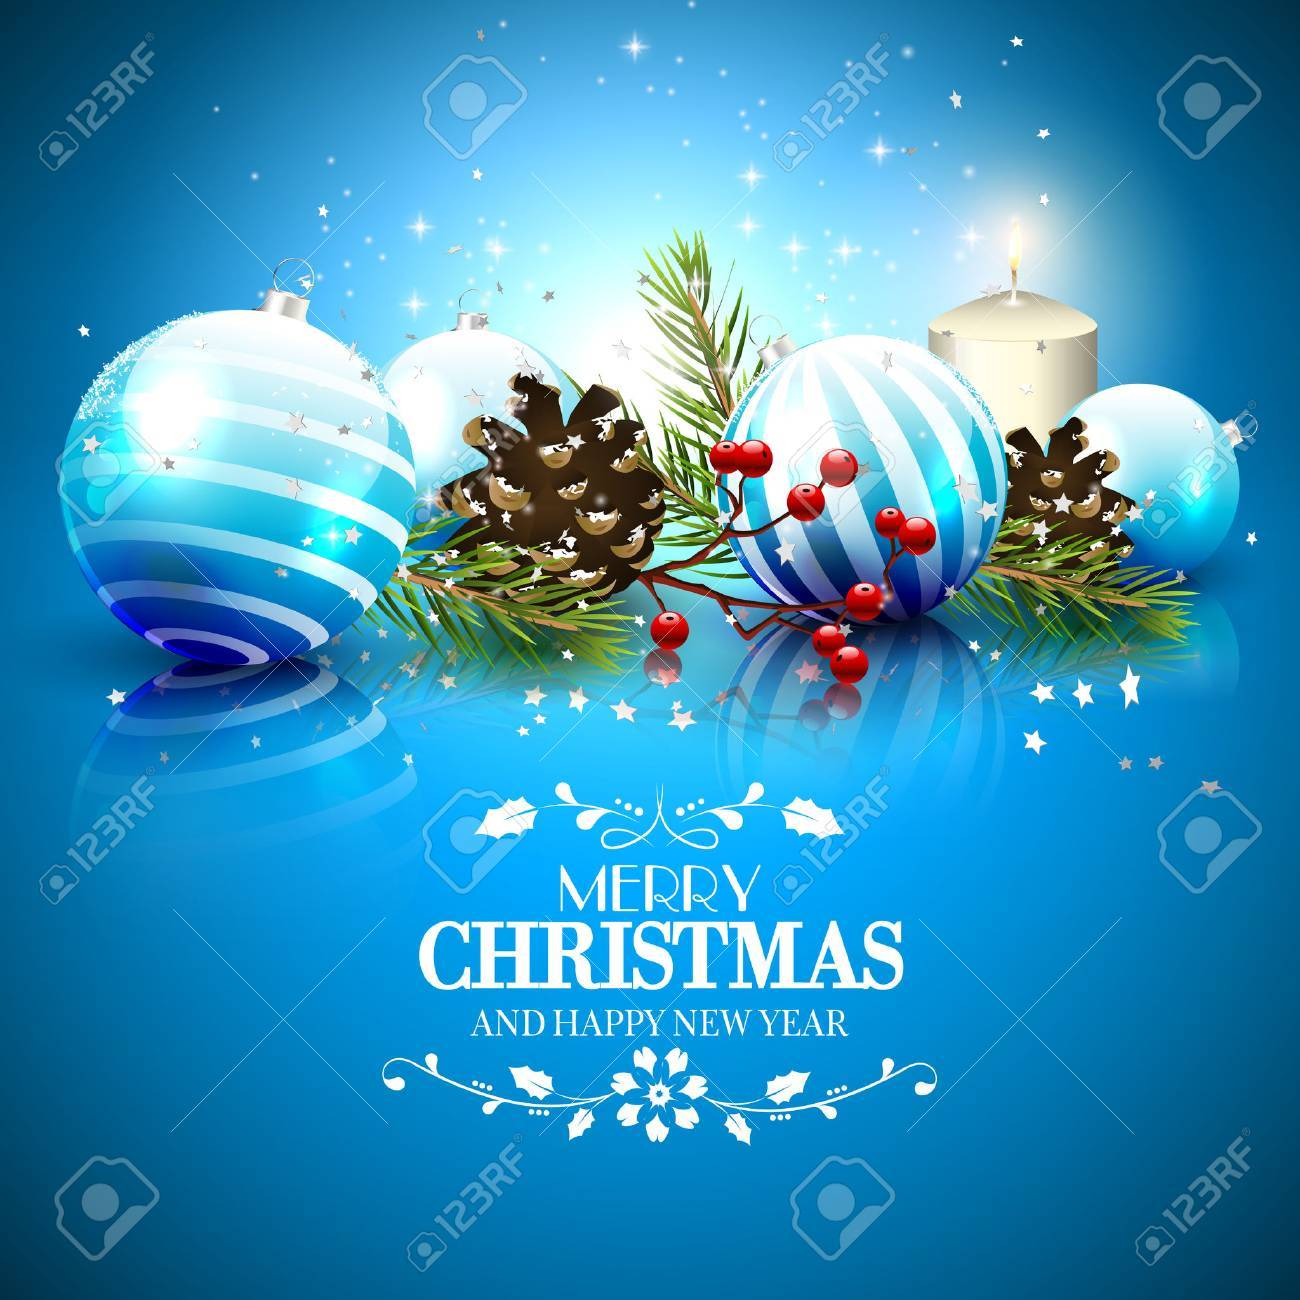 Greeting card stock photos royalty free greeting card images christmas greeting card with traditional decorations and calligraphic lettering m4hsunfo